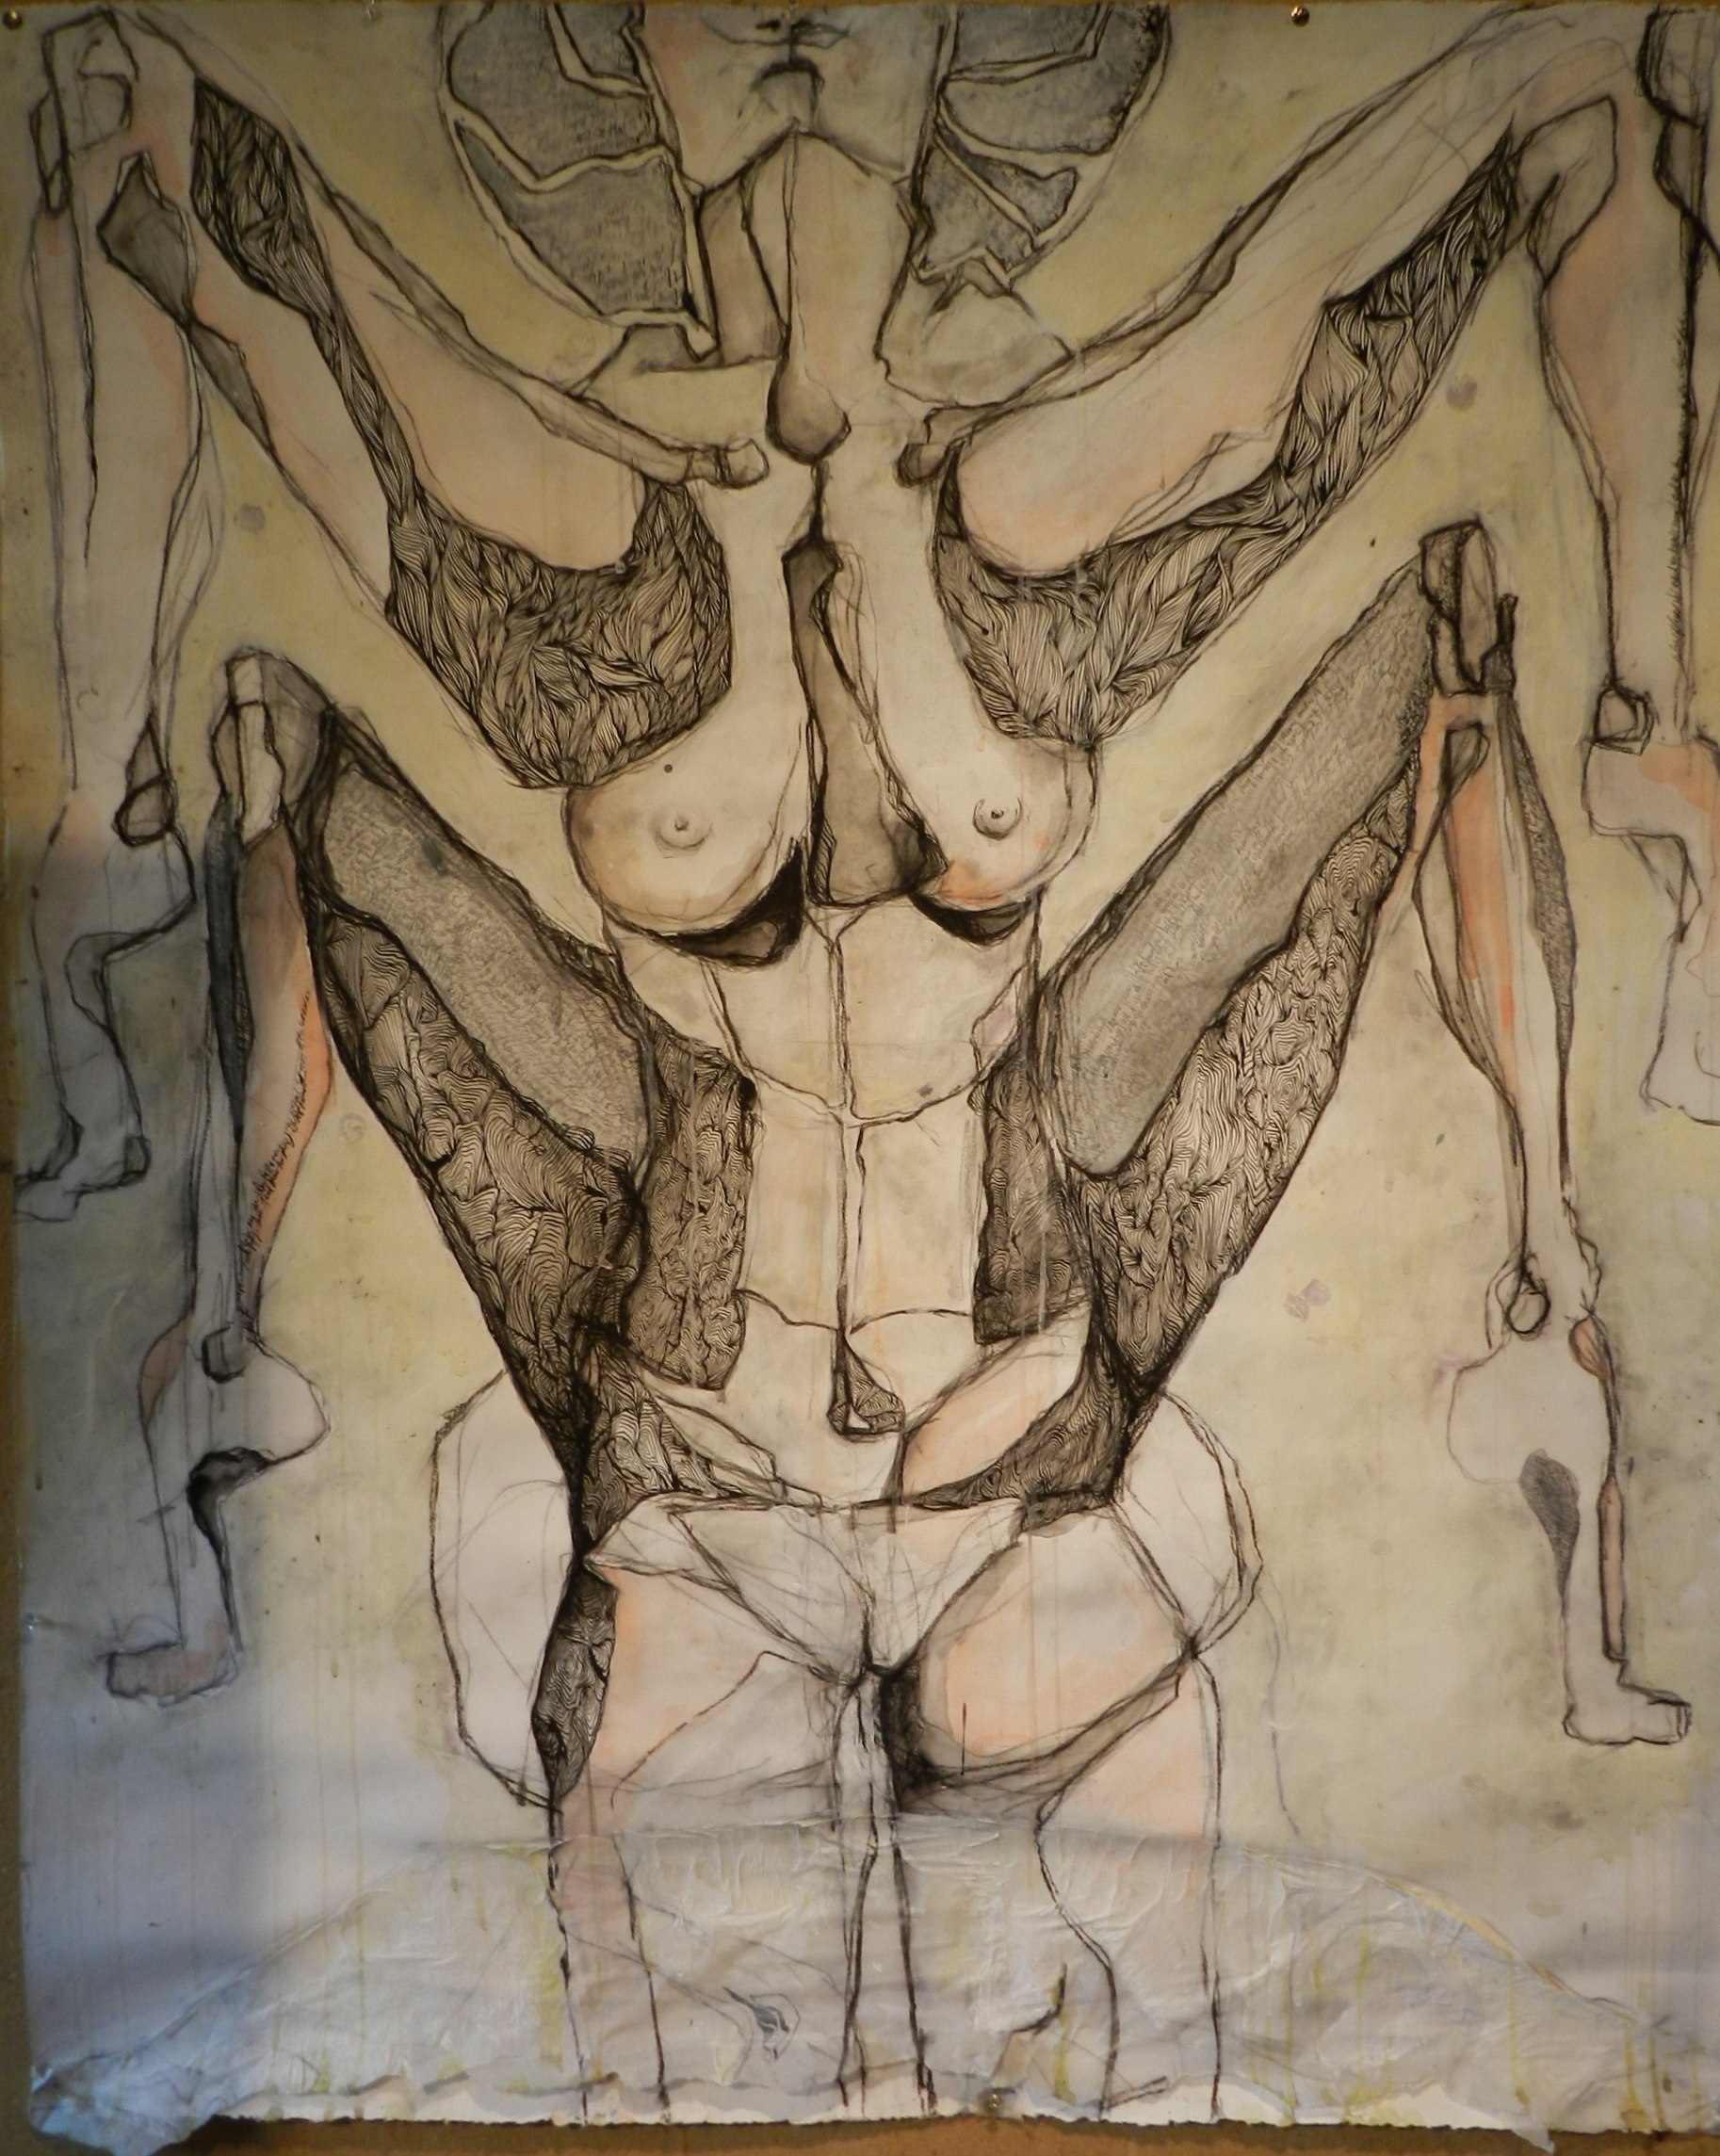 Charcoal, pen and ink and acrylic wash on paper. 2011